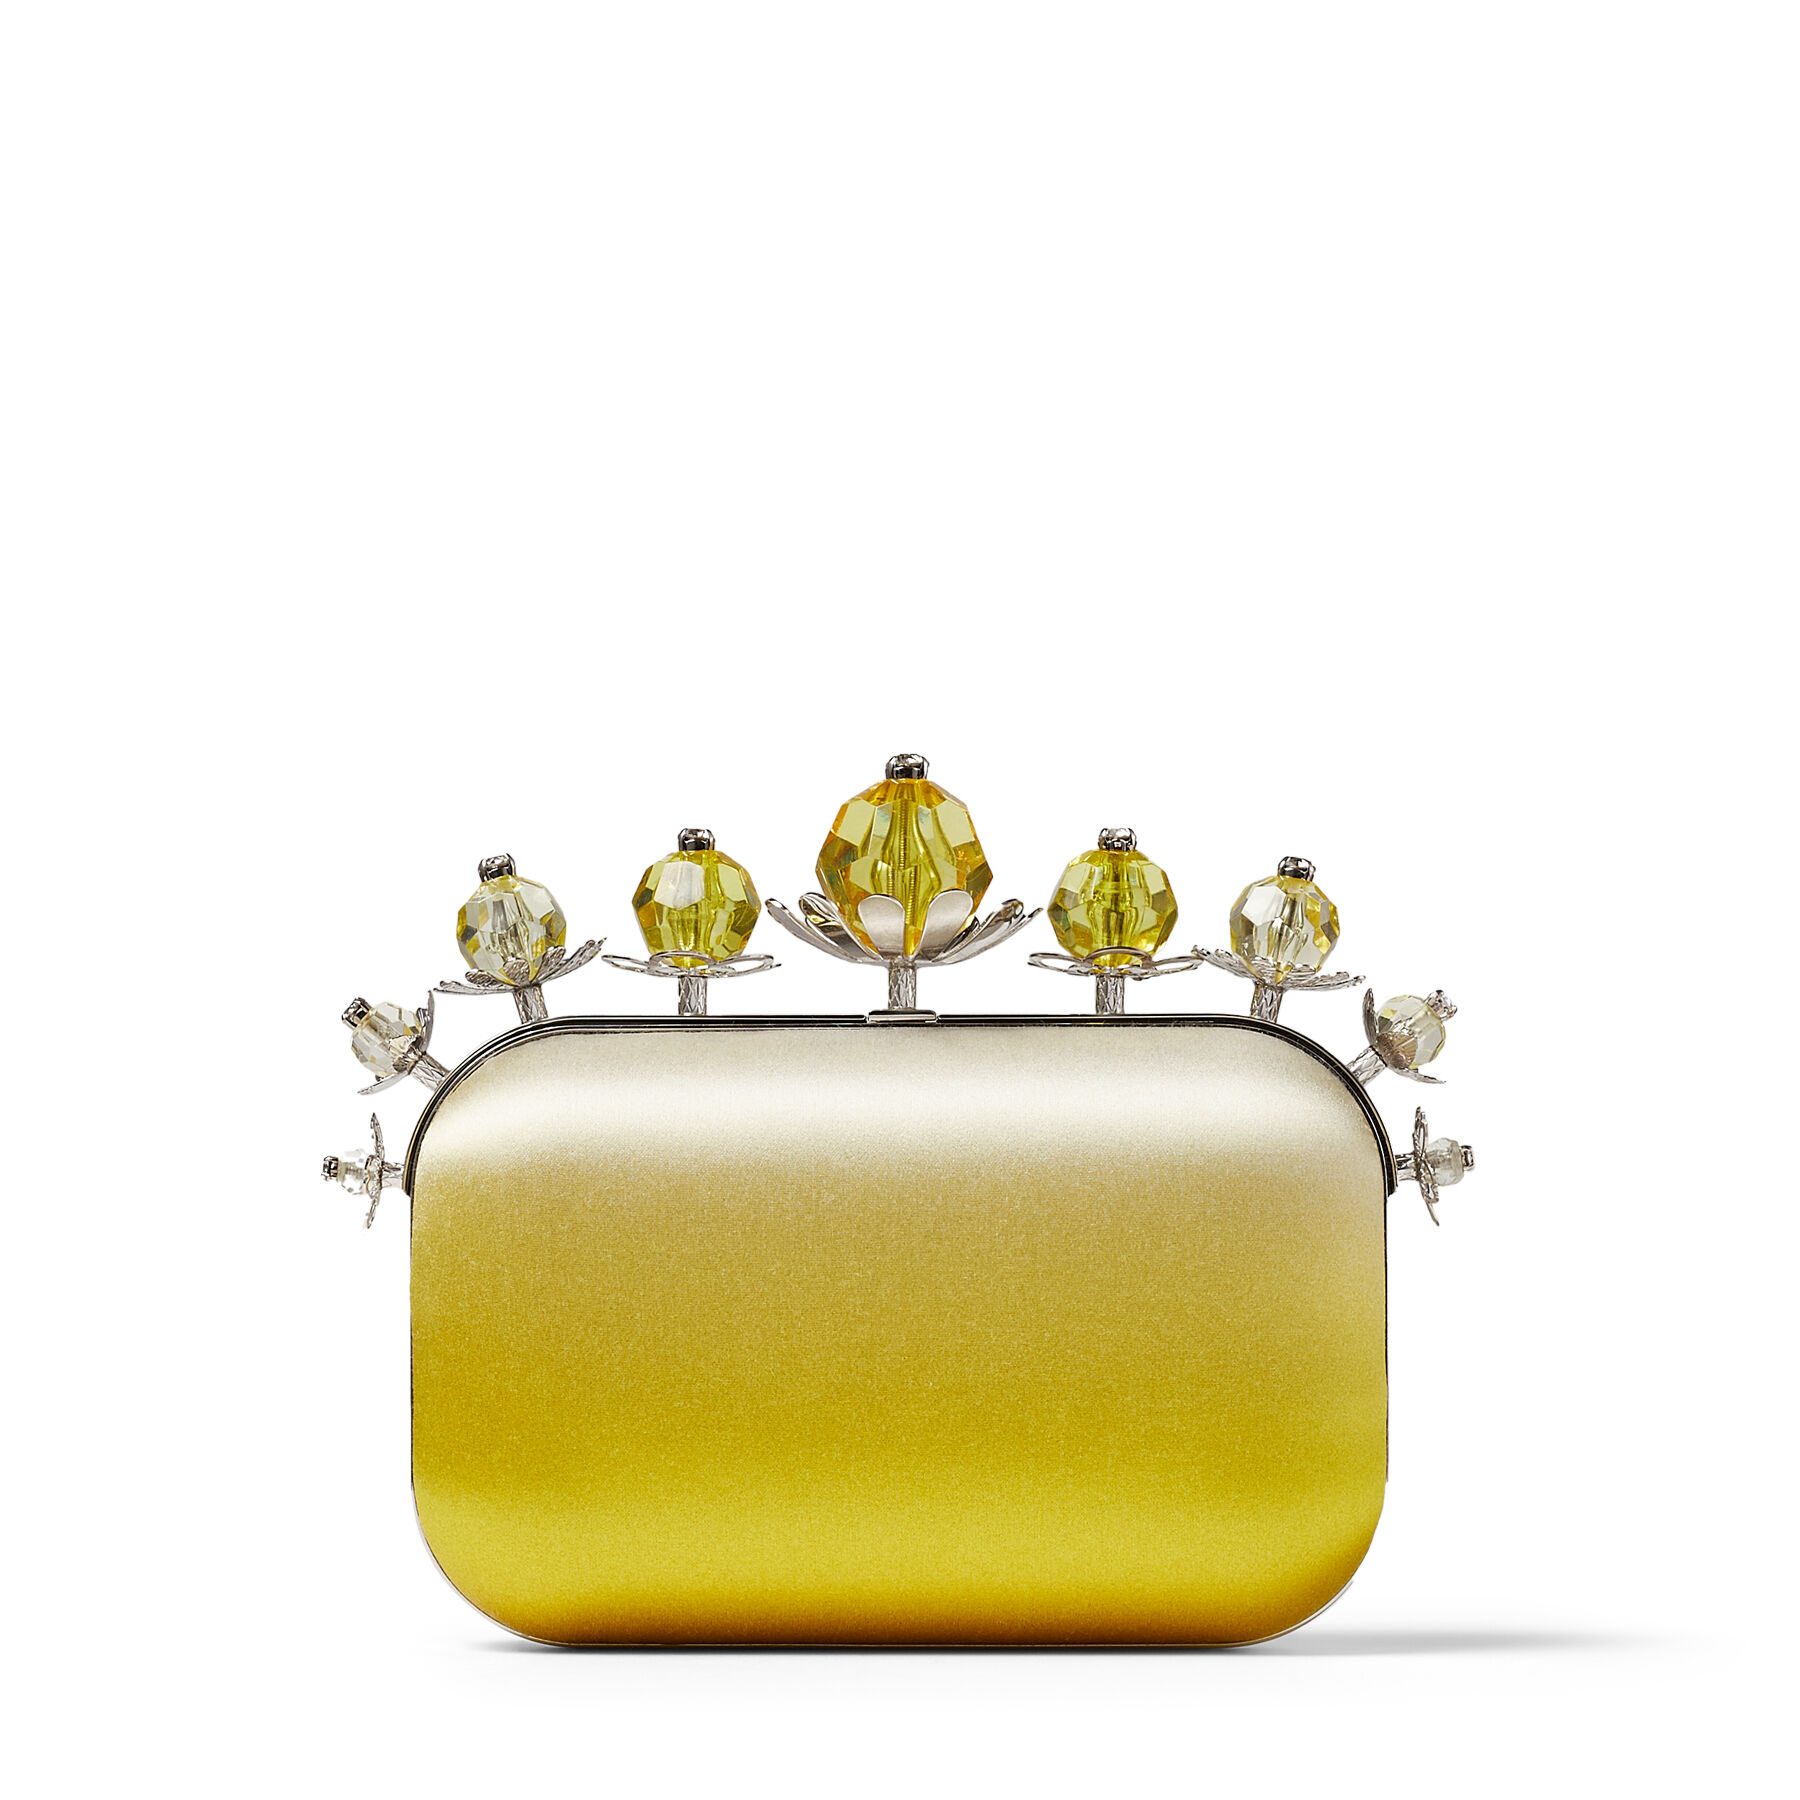 CLOUD - Sunbleached Degrade Satin Clutch Bag with Plexi and Crystal Flower Frame